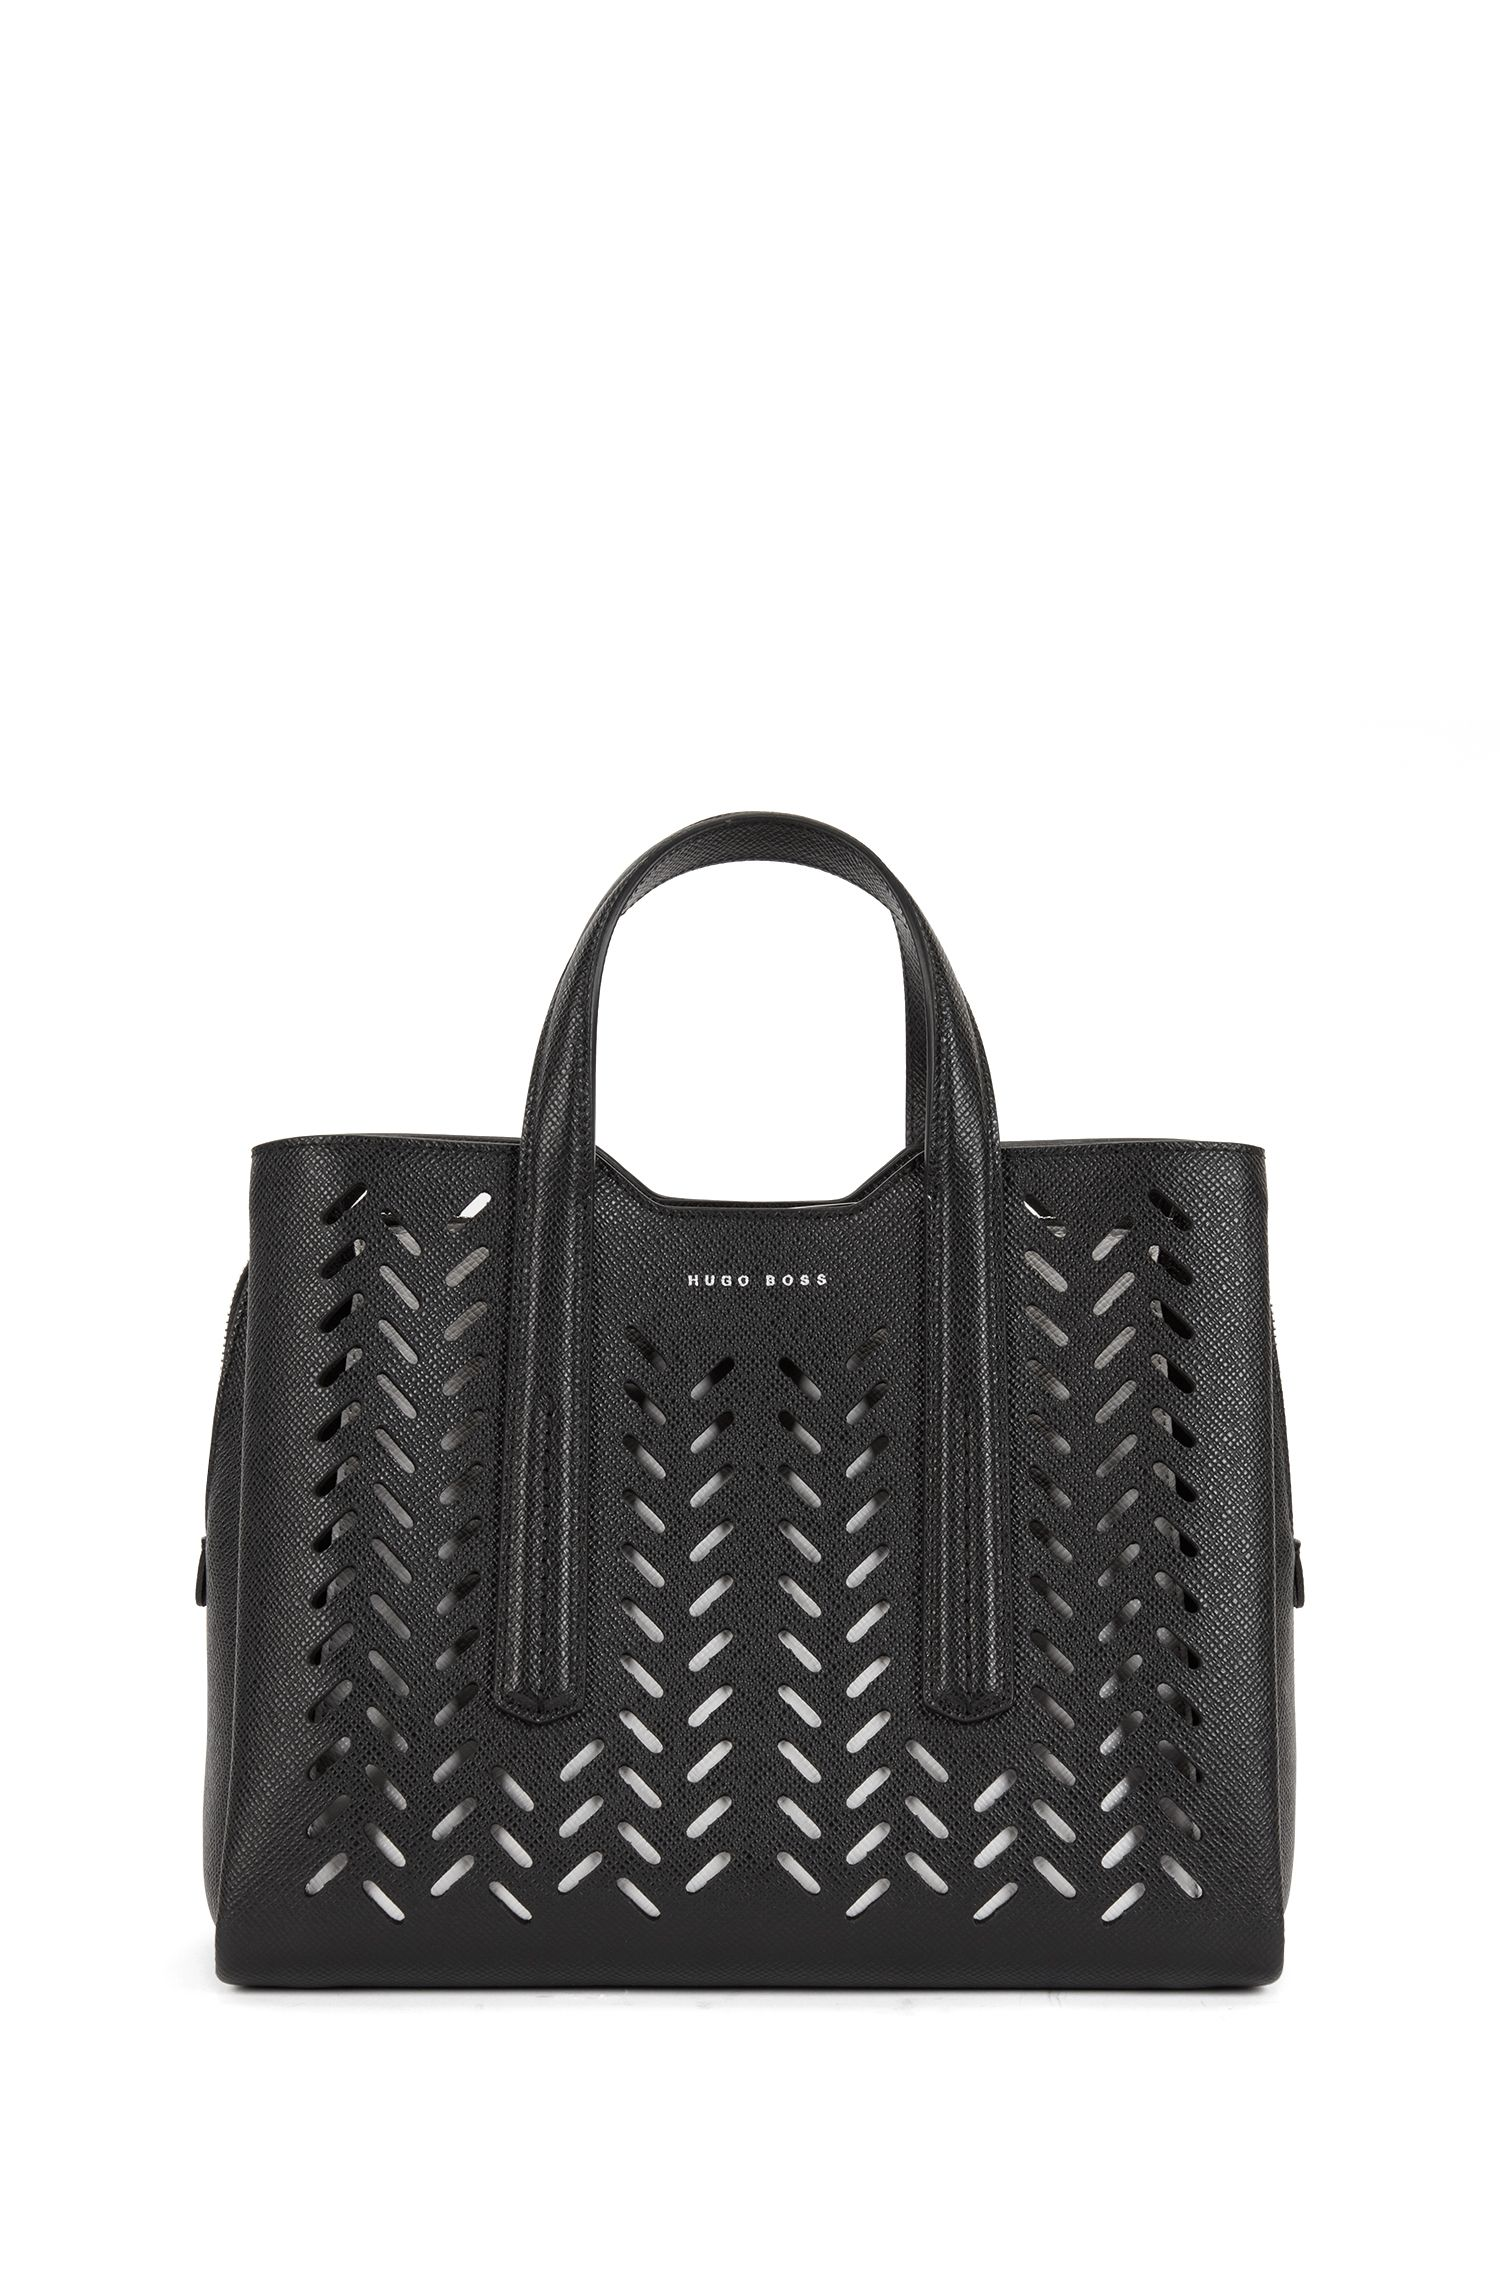 Tote bag in lasered Saffiano leather